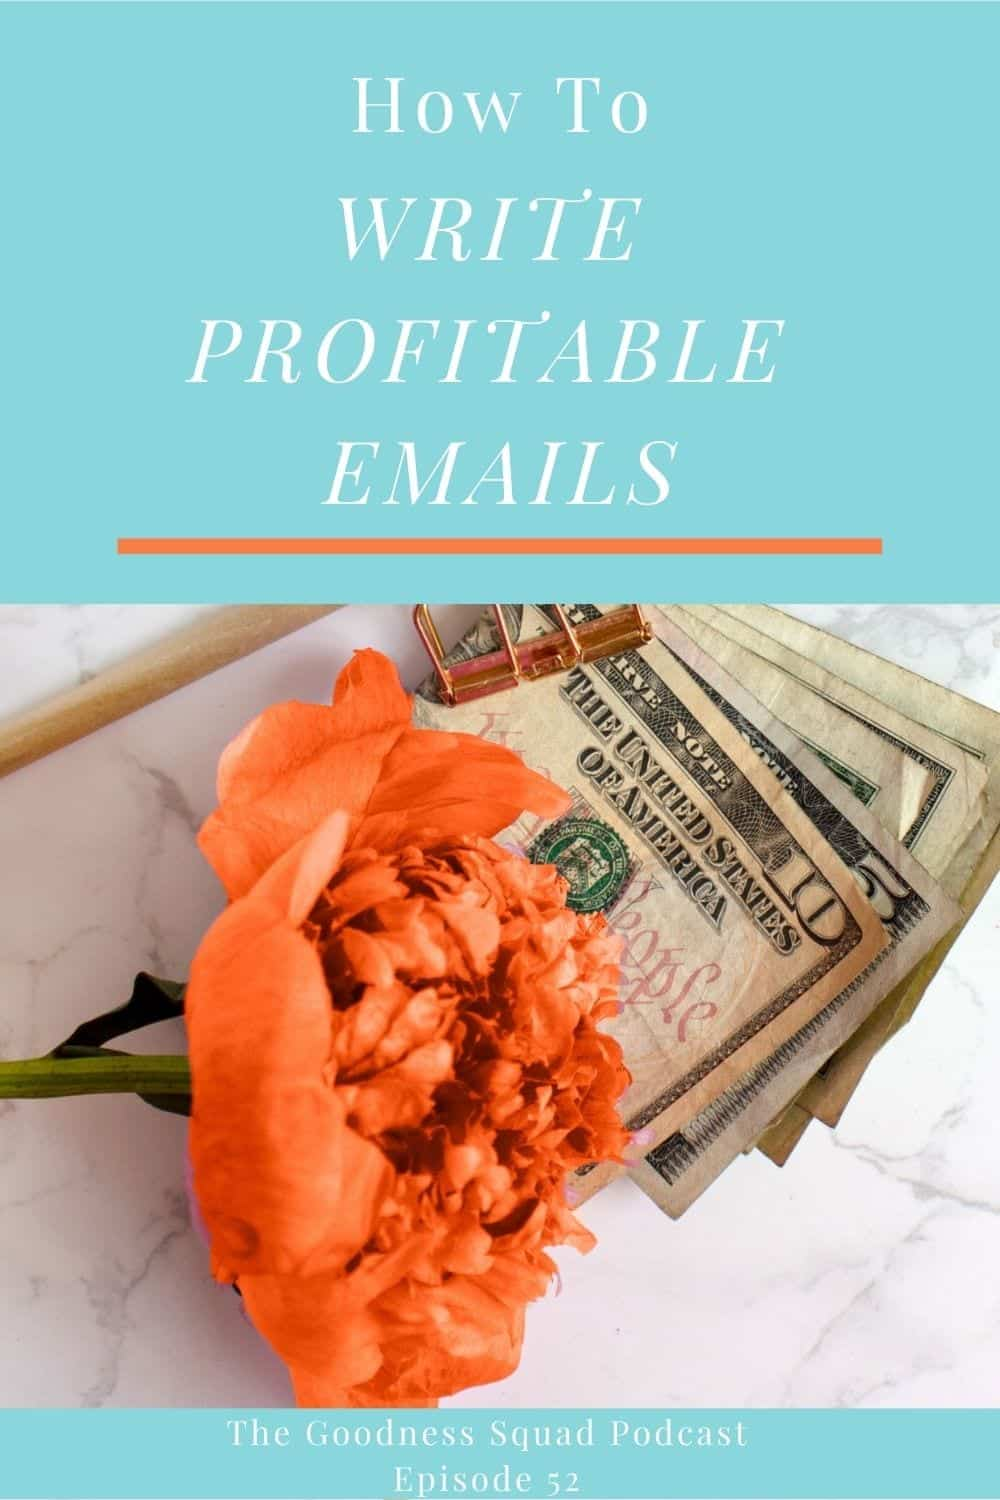 052_Make email marketing profitable with these 7 smart rules